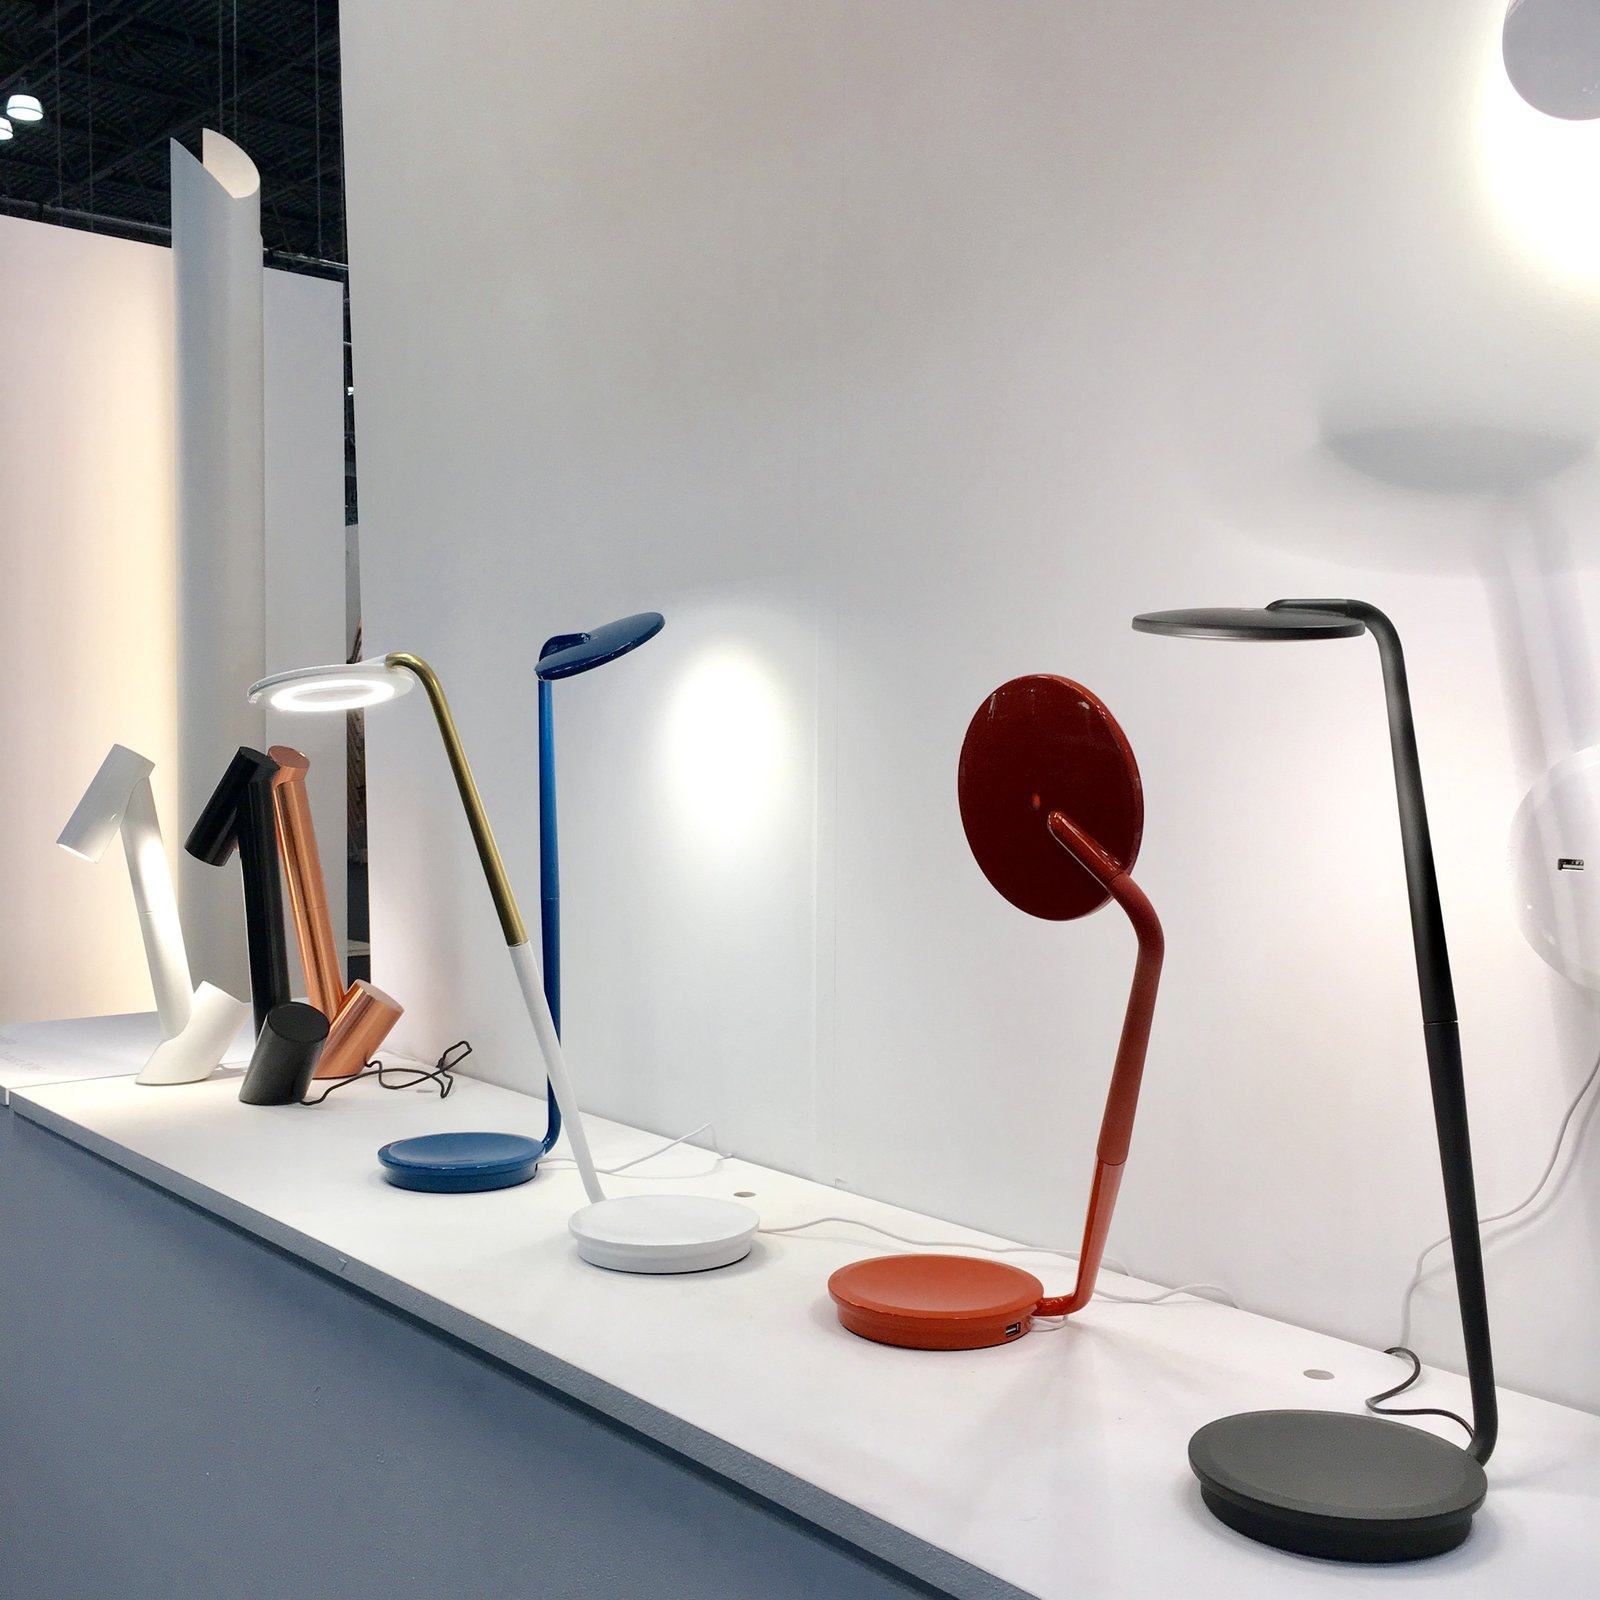 Pablo Designs displayed a wealth of product from heavy-hitting designers, including Brad Ascalon, Peter Stathis, and Matthew Boykov. A few old favorites were on display too: Here we see Pixo is in the foreground, a 2012 task light that's 97% recyclable with a circular shade; Giraffa, which comes in black, white and copper, is at left. It is constructed of a CNC-machined aluminum tube and it can rotate 360 degrees.